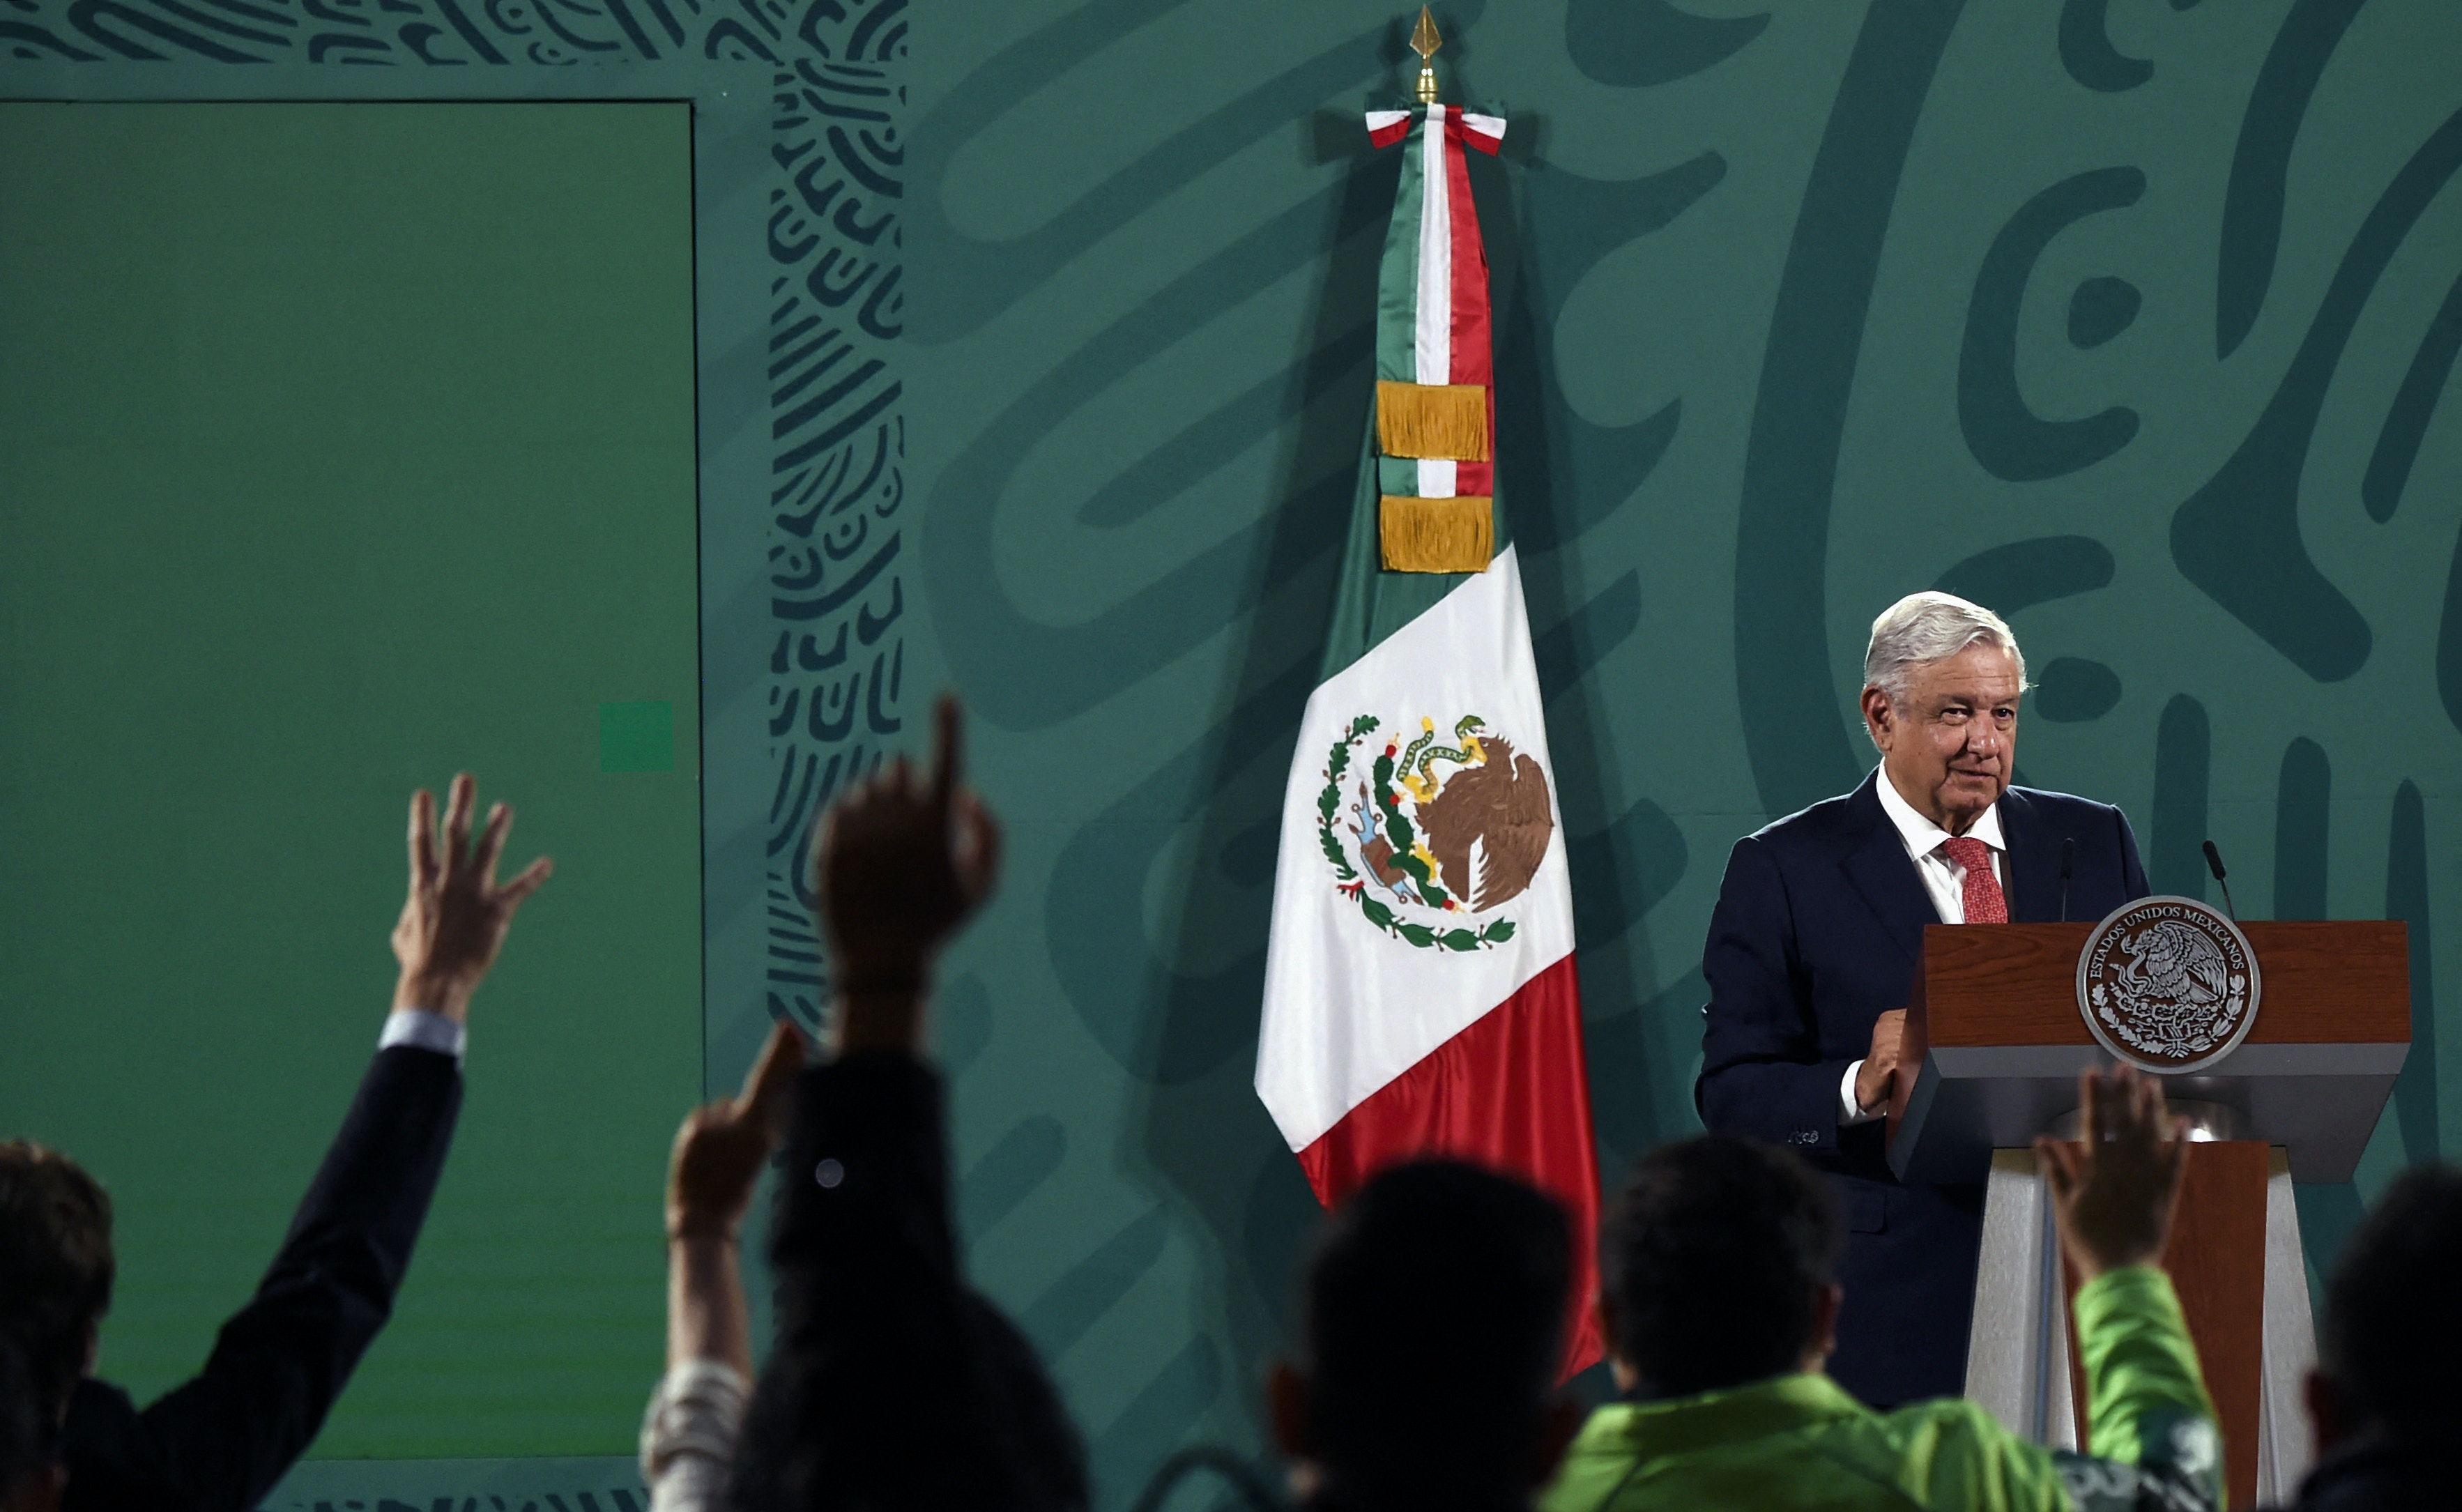 """Mexican President Andres Manuel Lopez Obrador delivers a press conference about the results of Sunday's midterm elections at the National Palace in Mexico City on June 7, 2021. - Mexican President Andres Manuel Lopez Obrador said Monday his ruling coalition was on course to retain its control of the lower house, despite a setback in legislative elections he called """"free and fair."""" (Photo by ALFREDO ESTRELLA / AE / AFP) (Photo by ALFREDO ESTRELLA/AE/AFP via Getty Images)"""